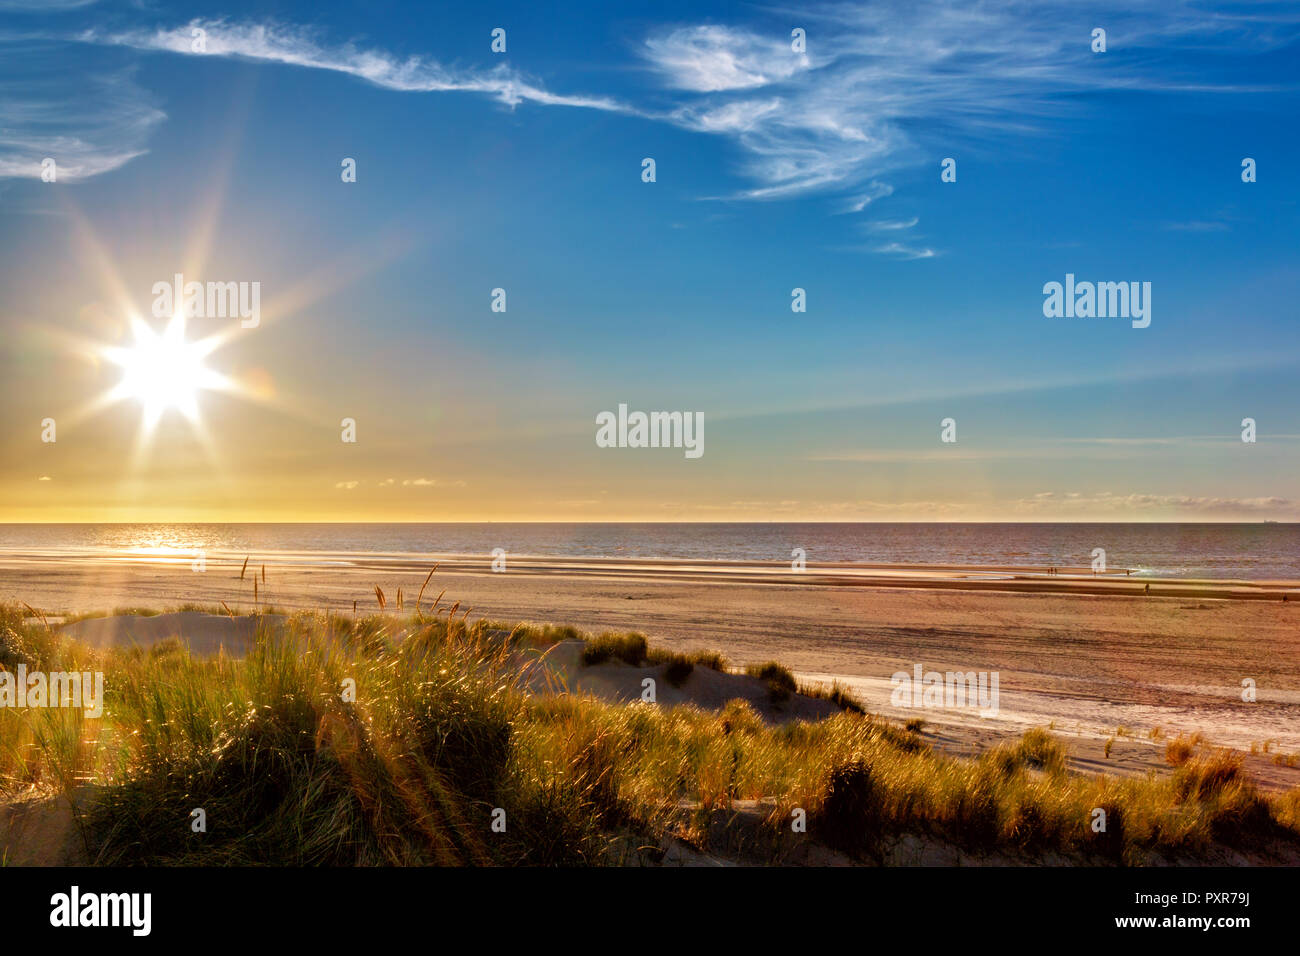 Sunset at the beach on the East Frisian Island Juist in the North Sea, Germany. Stock Photo